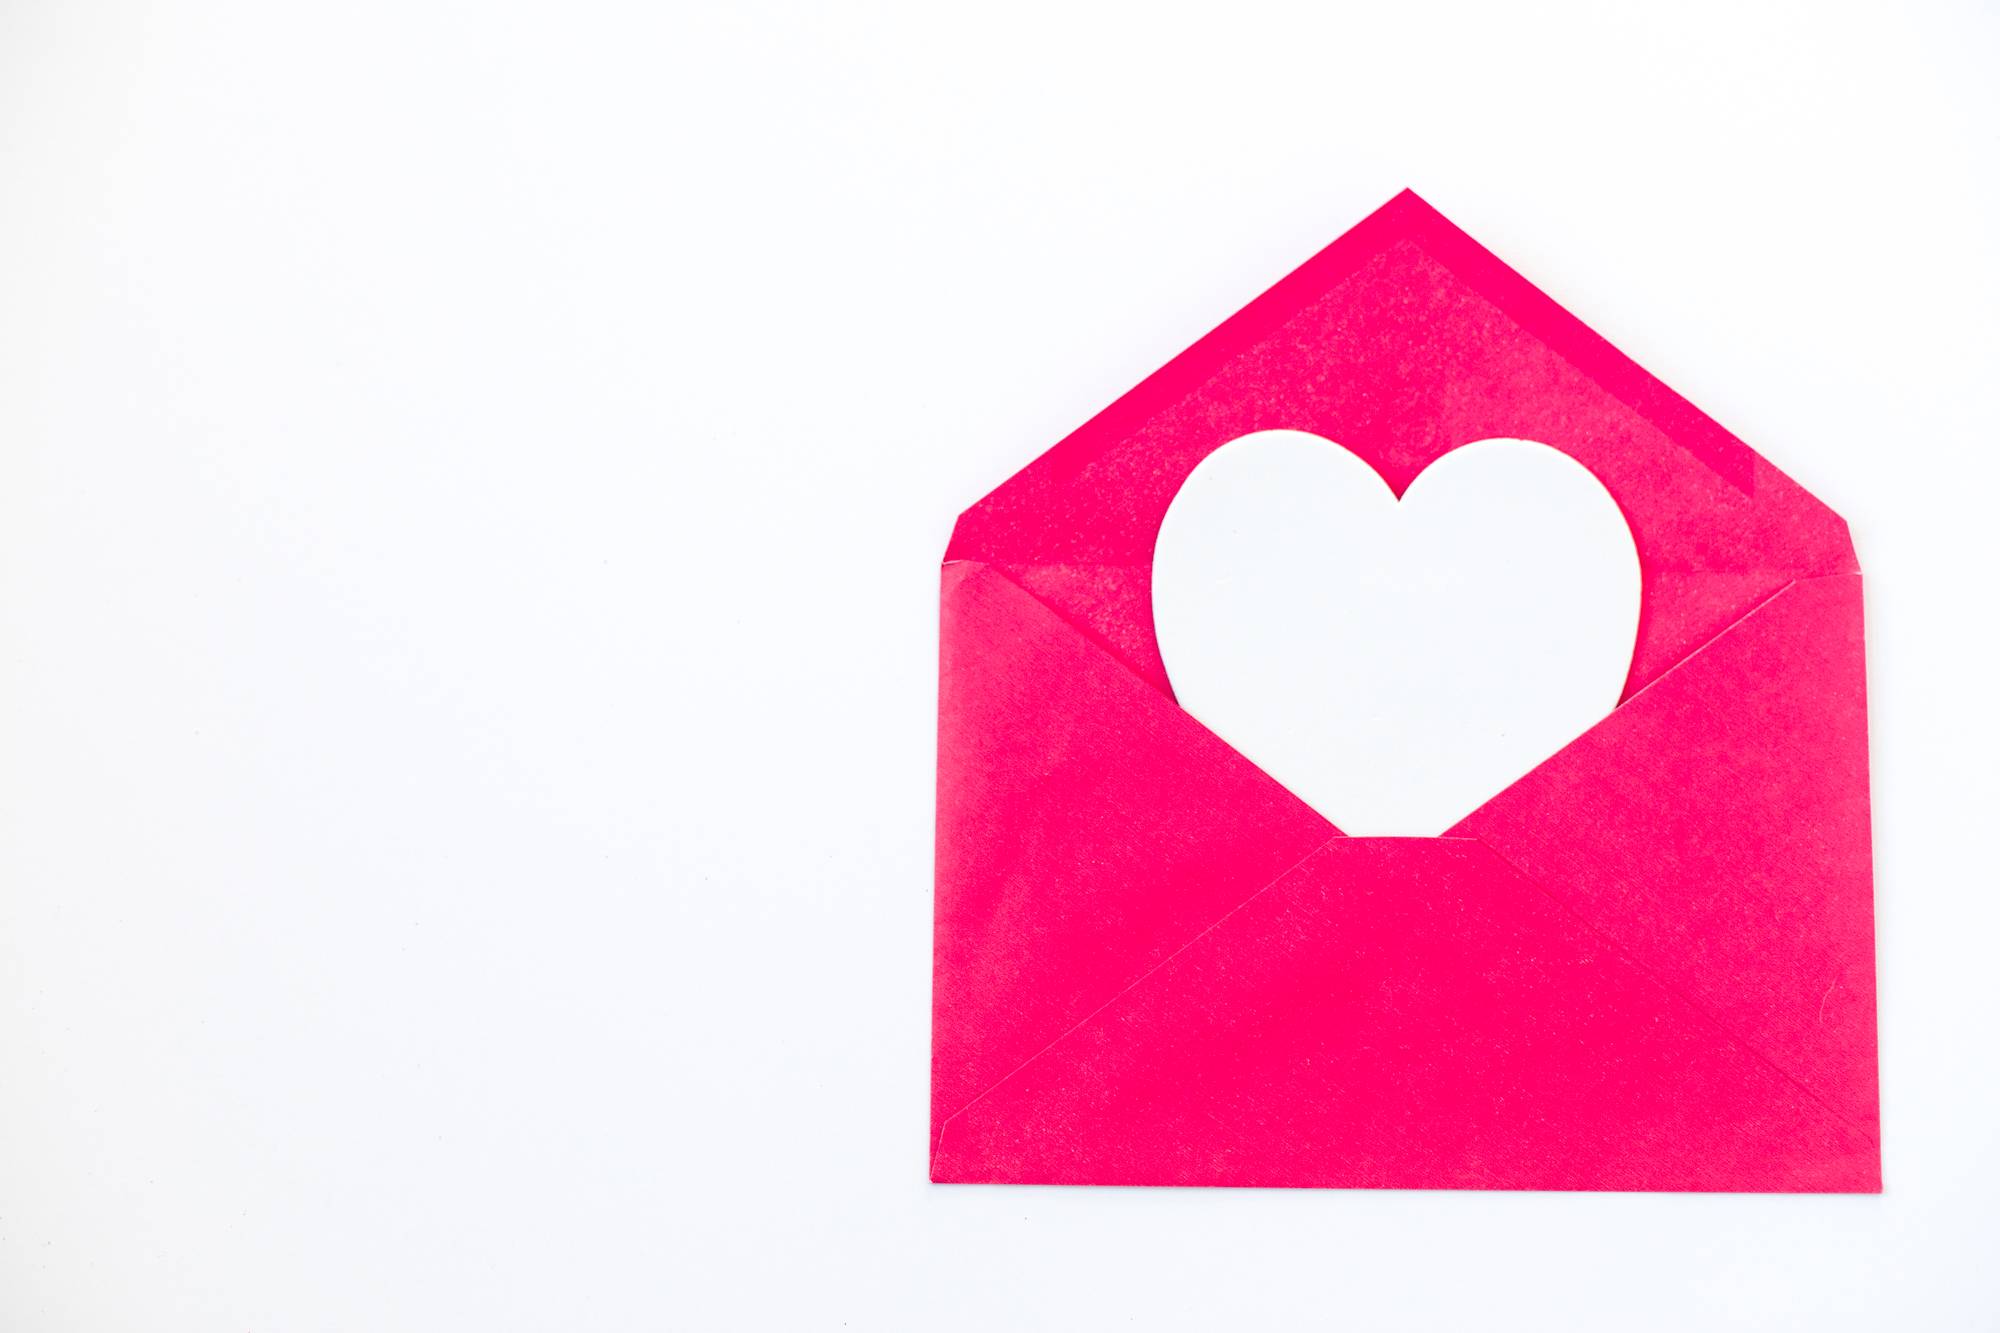 white heart, pink envelope, white heart poking out of envelope, tografy, photography business management